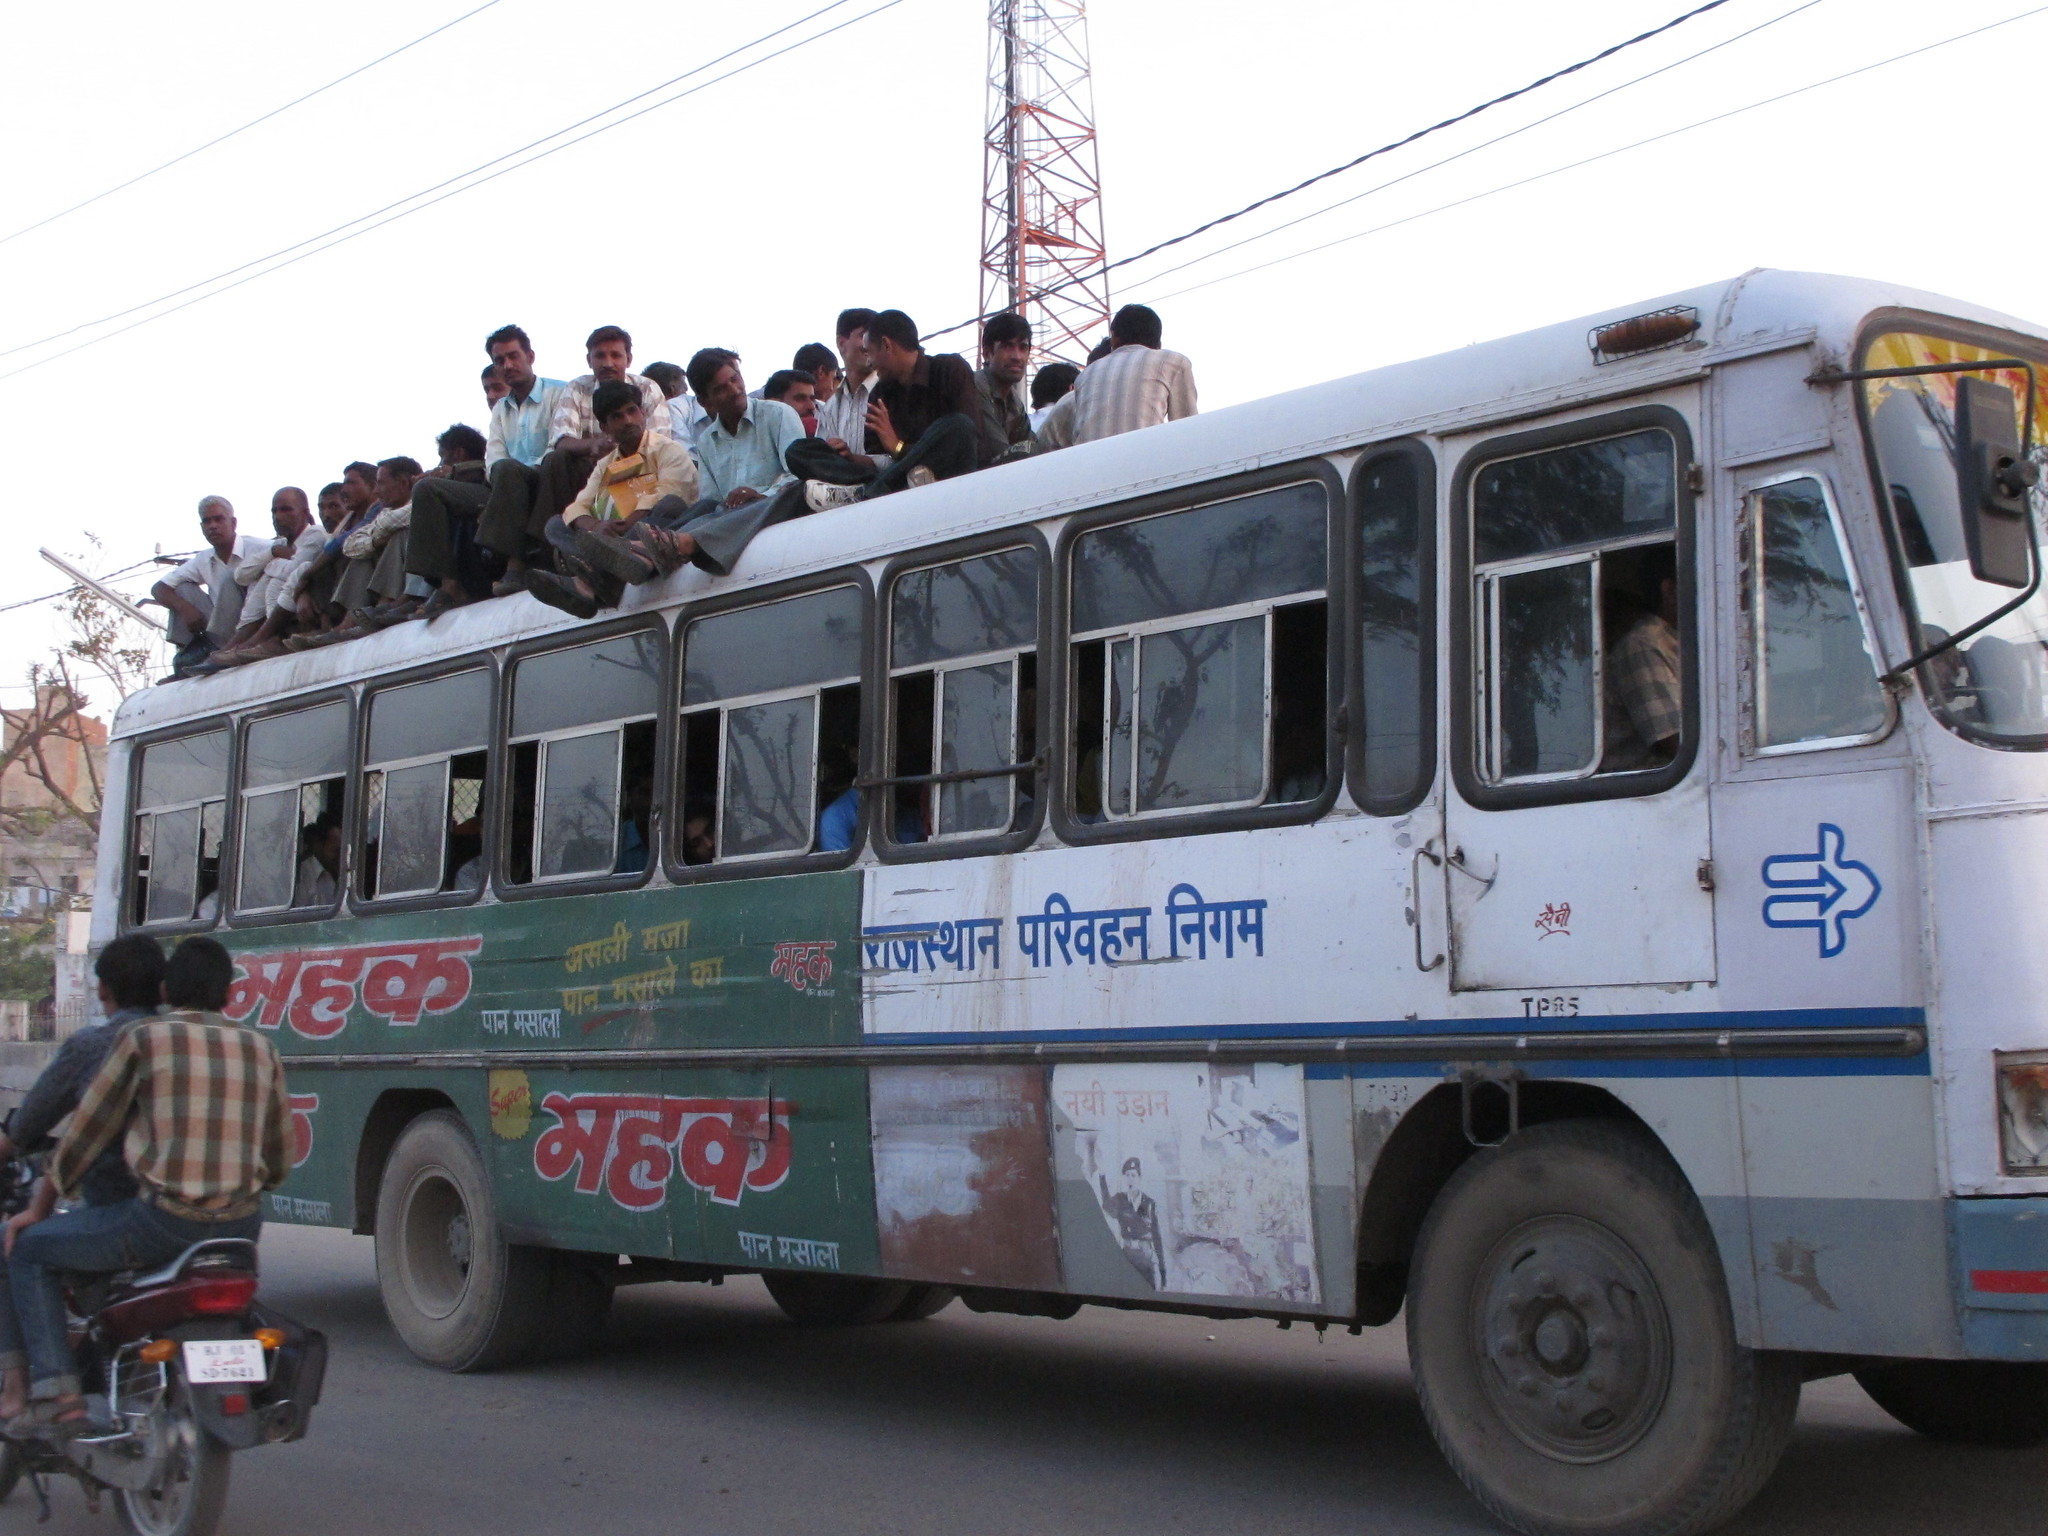 A crowded bus in India with people sitting on the roof